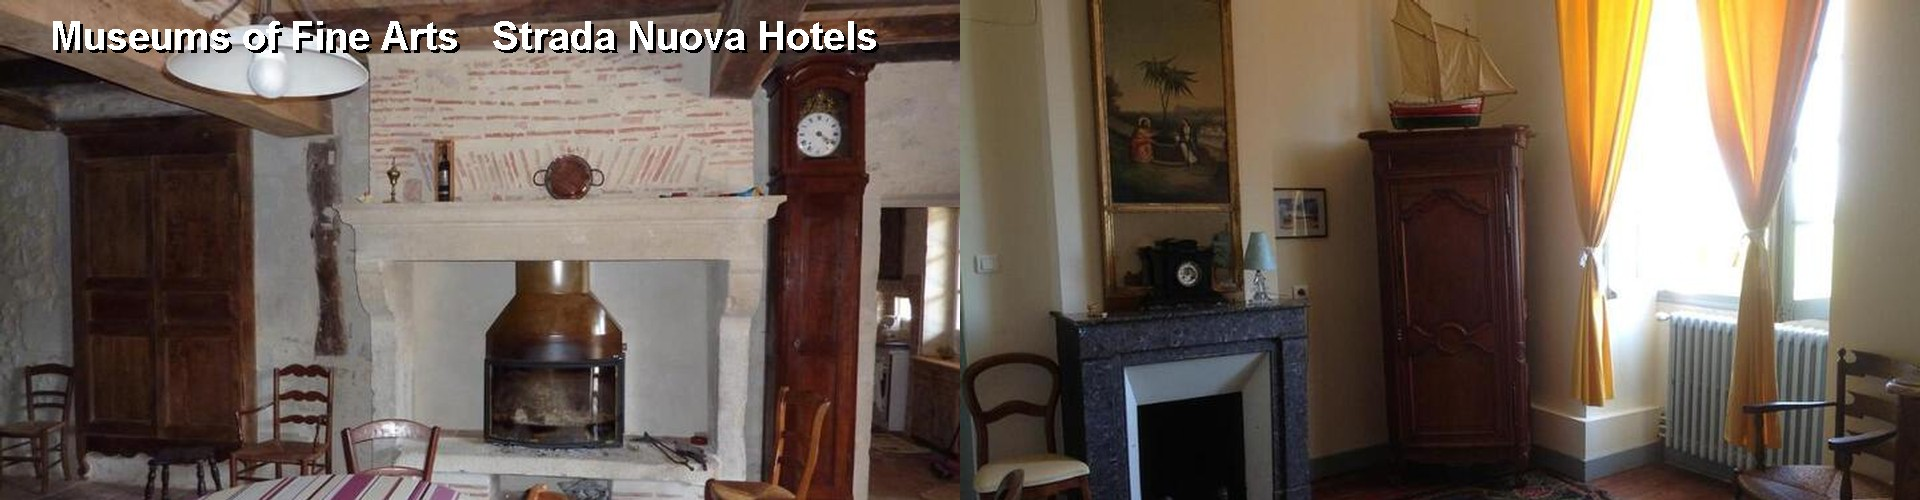 1 Best Hotels near Museums of Fine Arts Strada Nuova